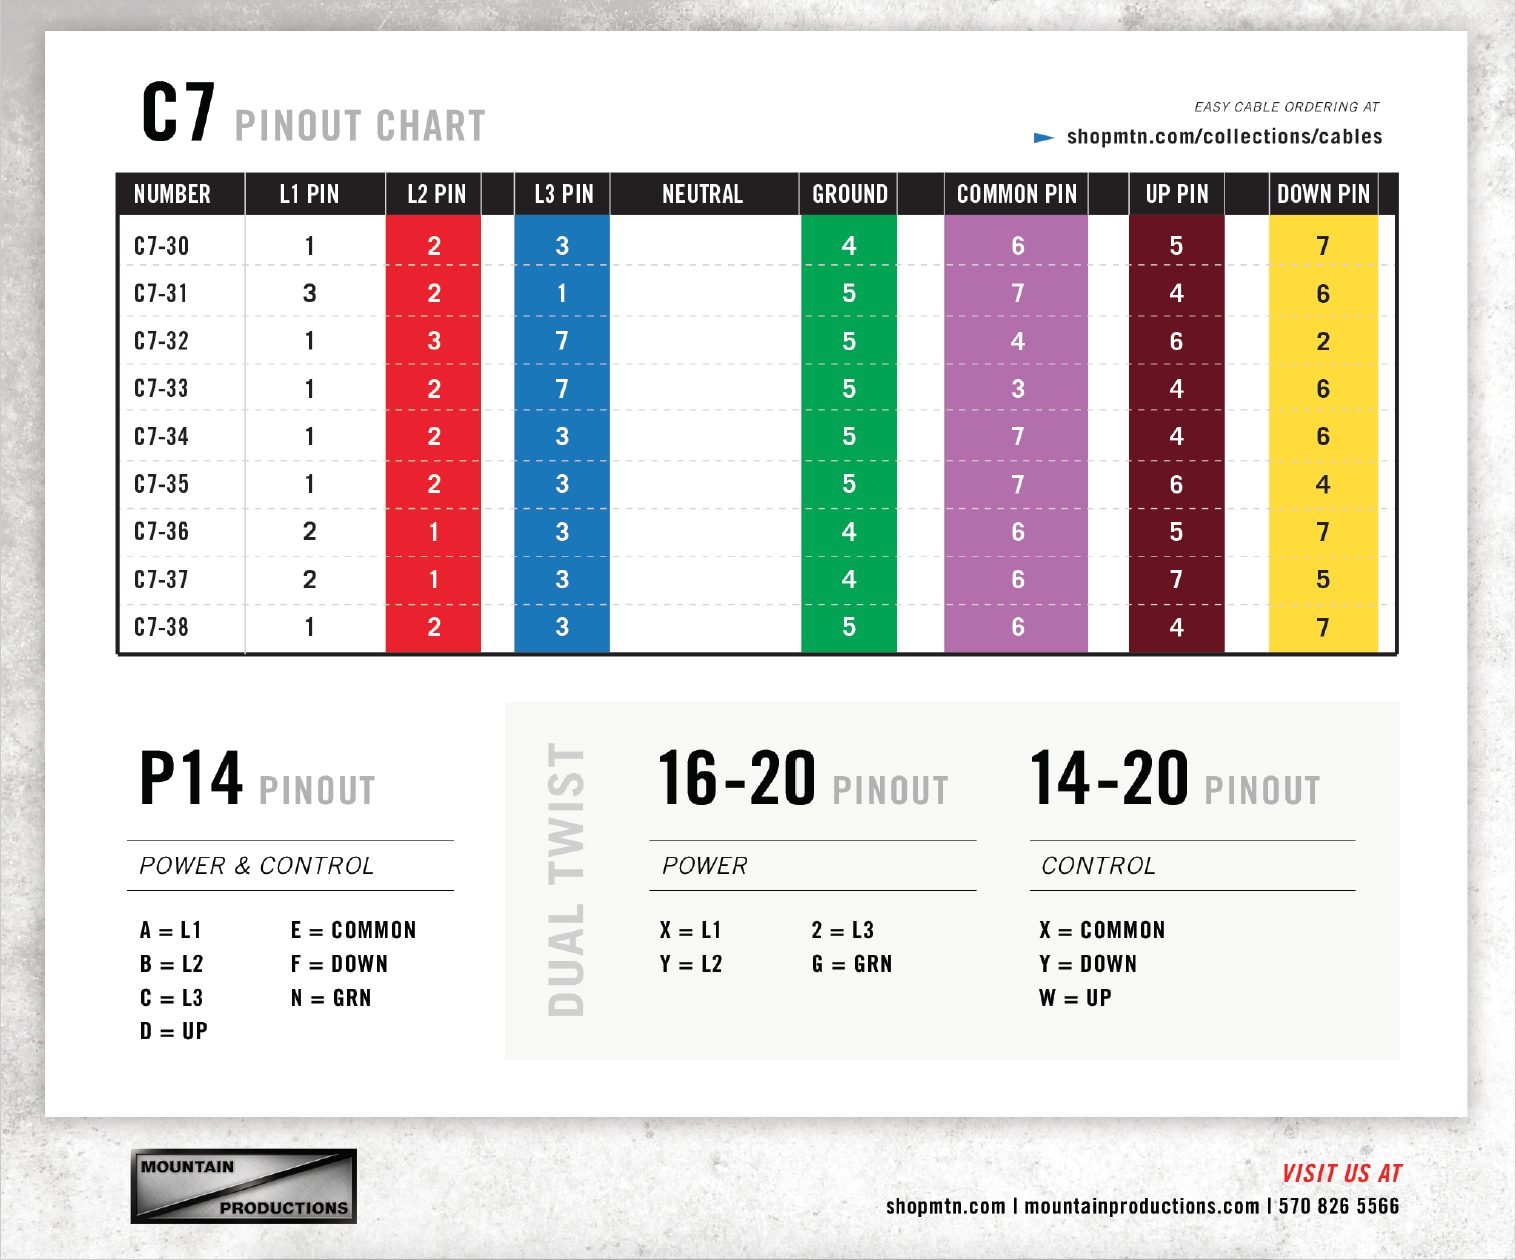 Common Cable Pinouts [Printable Chart] - Mountain NEWs